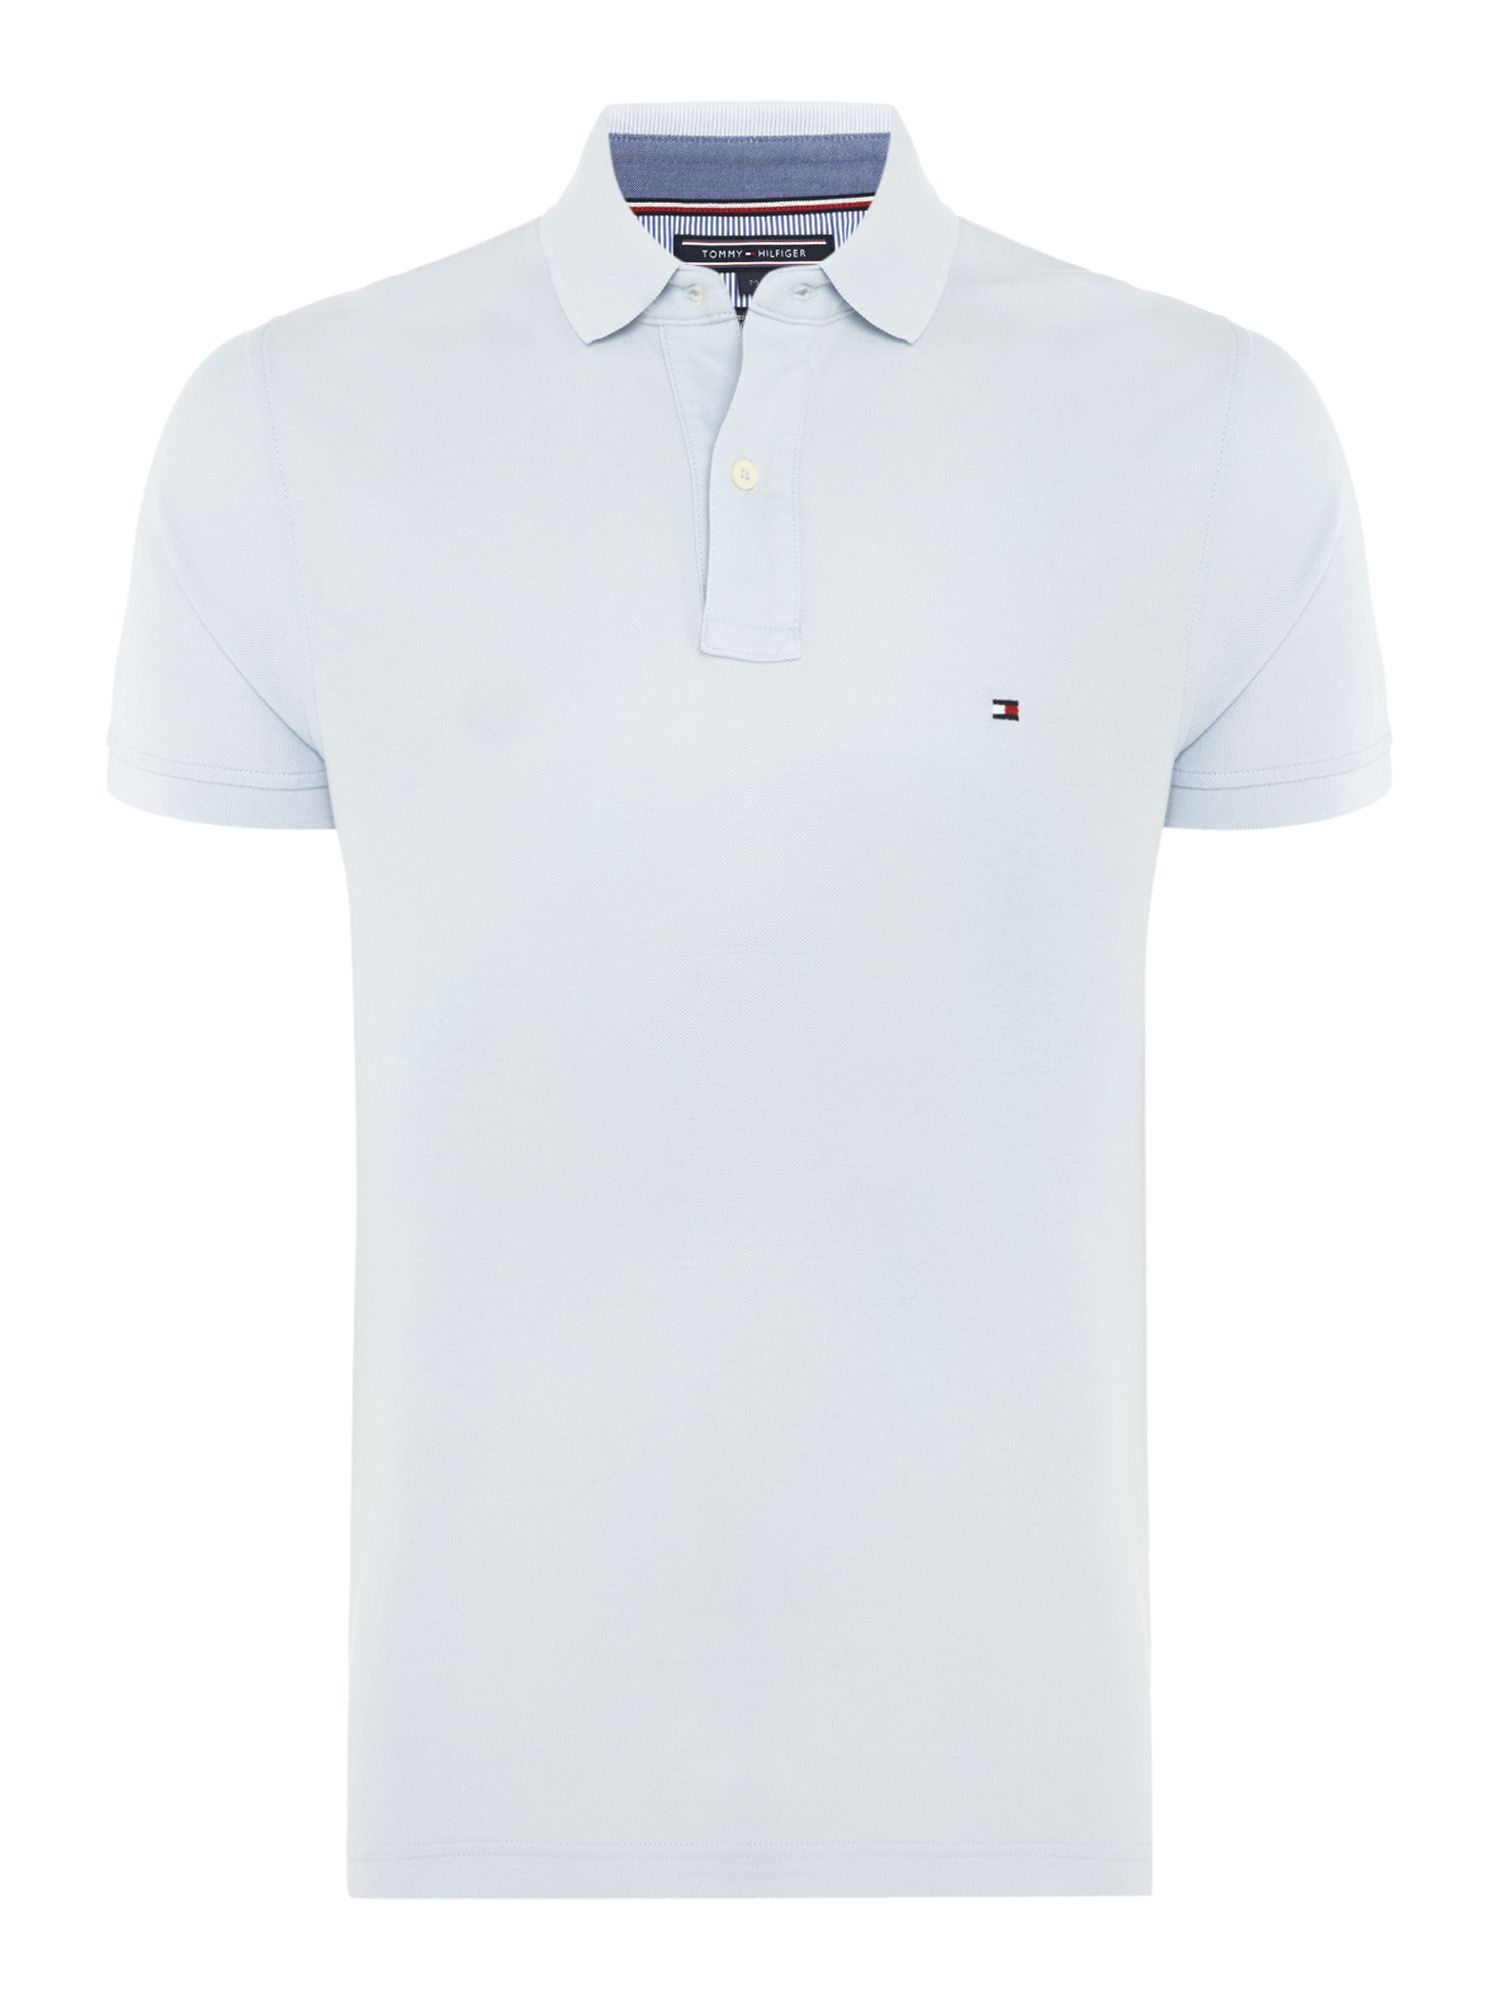 Men's Tommy Hilfiger Performance polo top, Grey